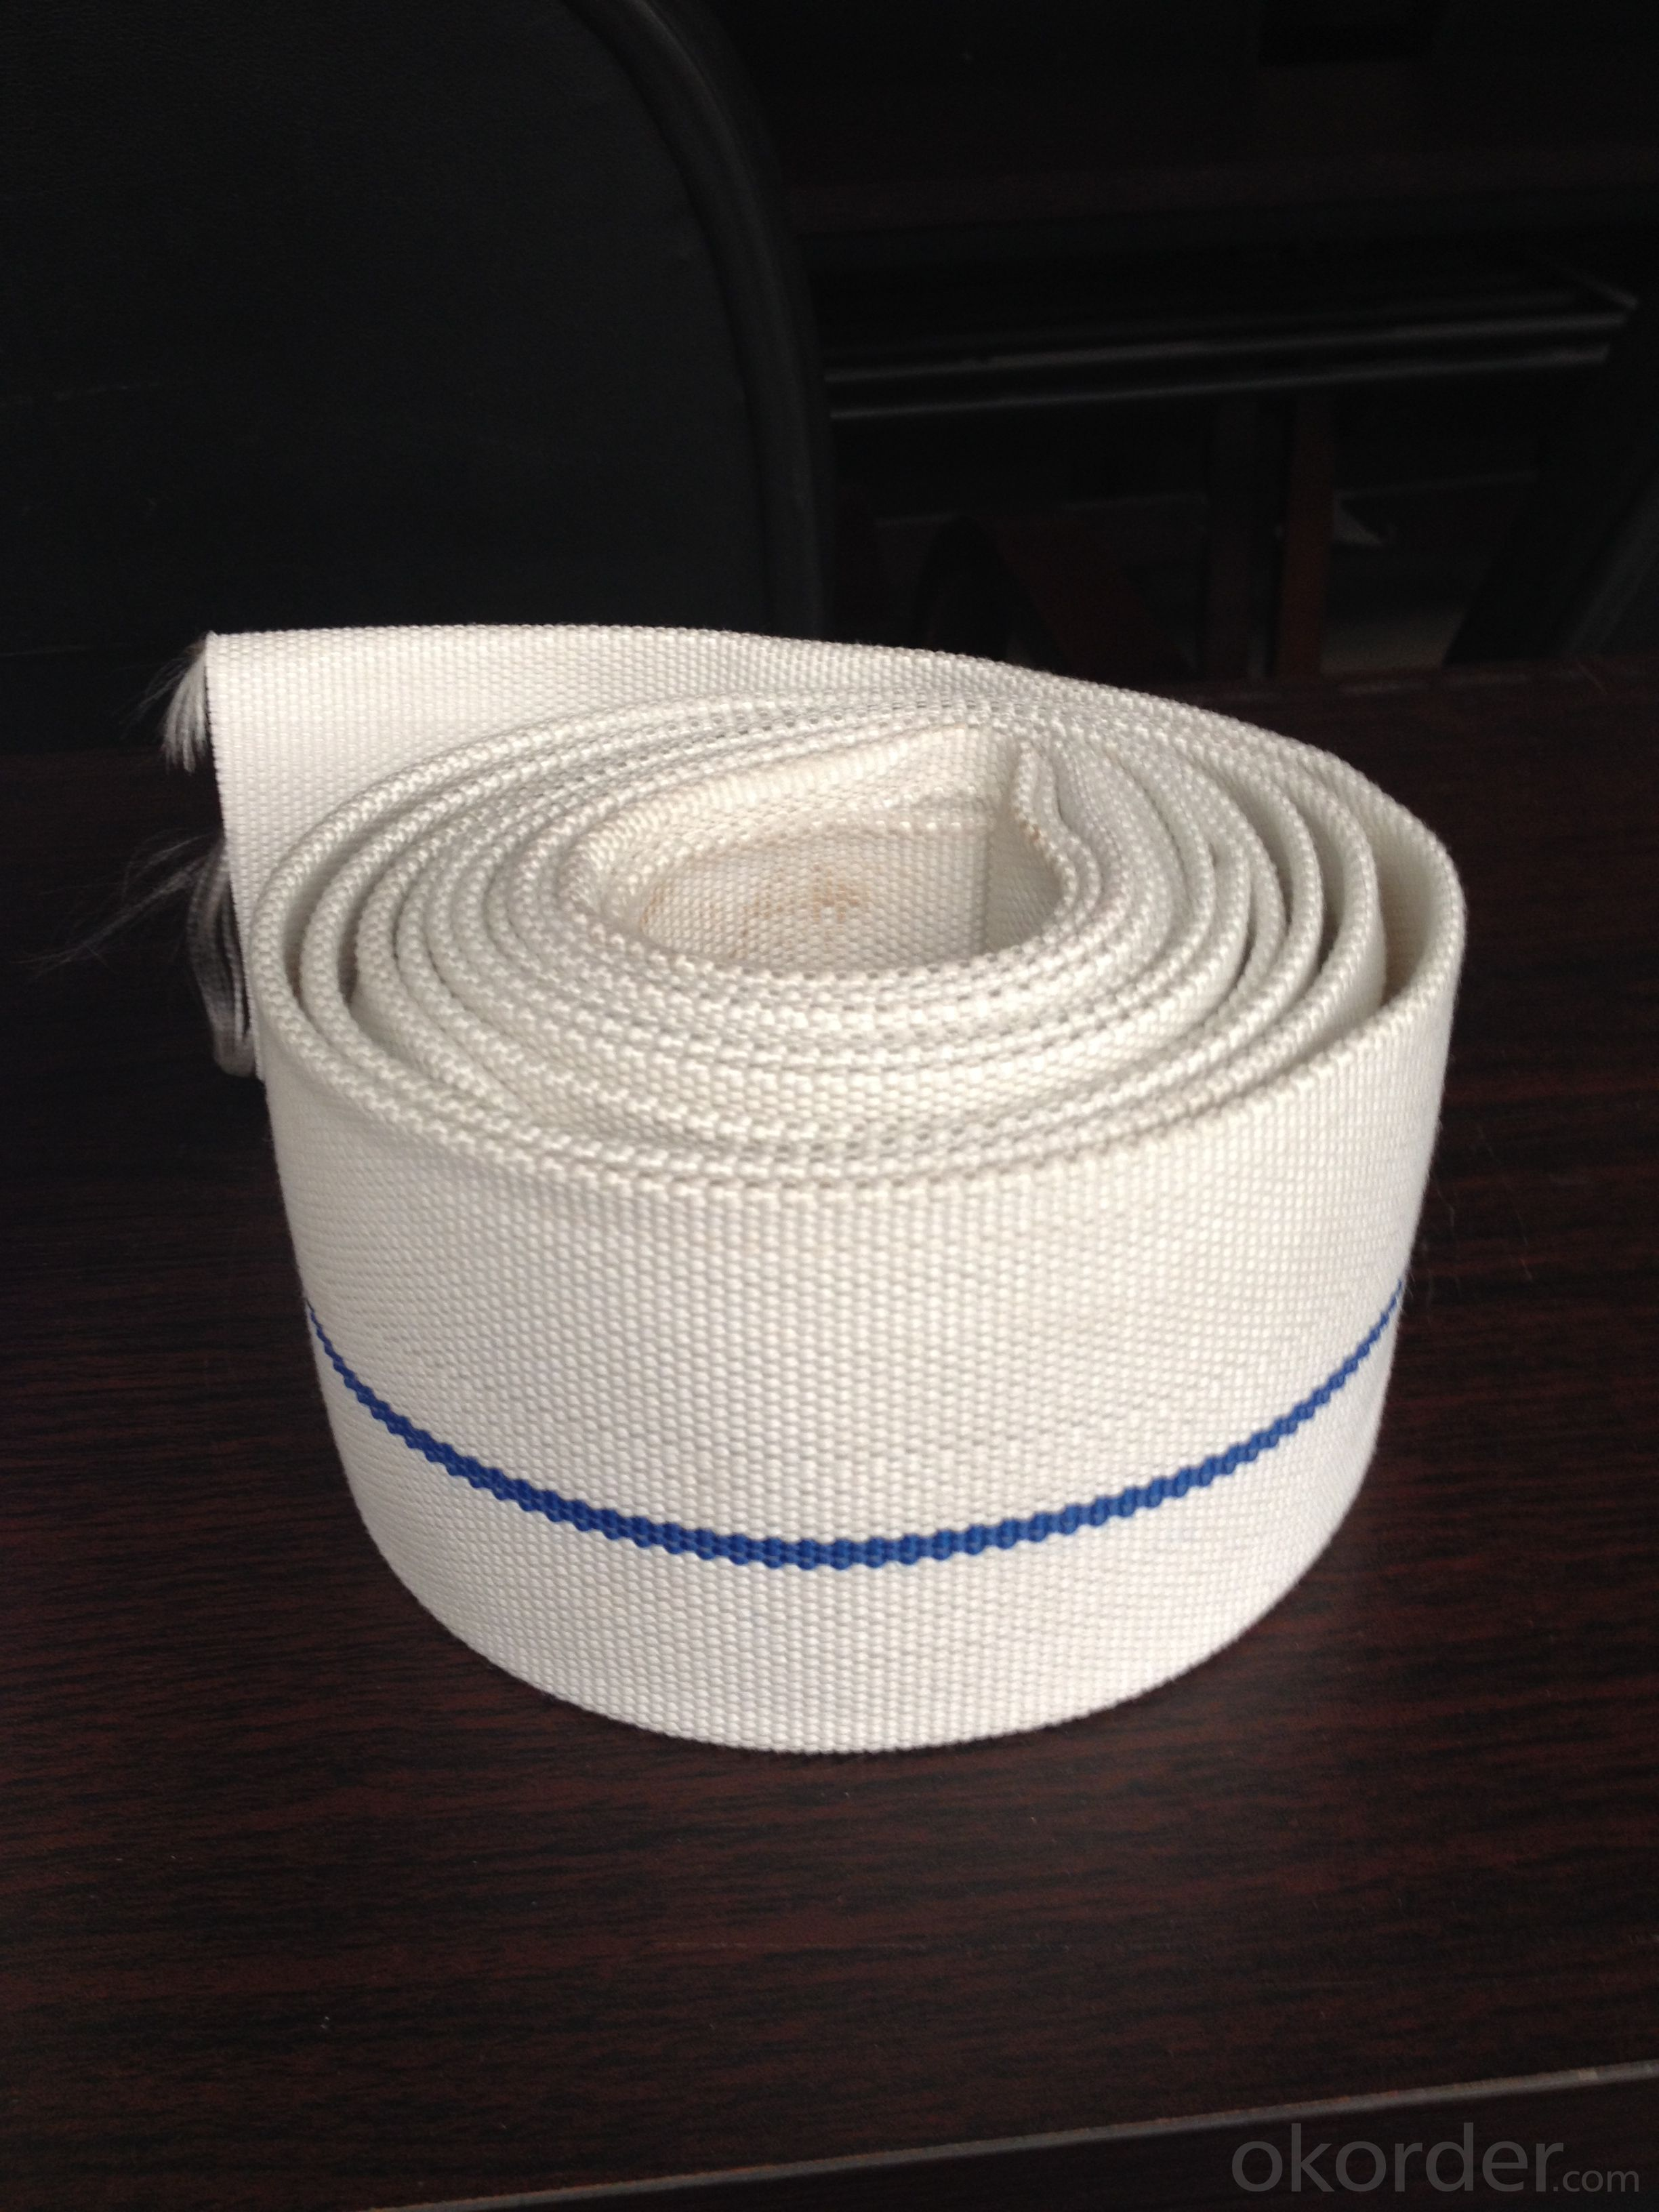 Fire hose, fire fighting hose ,pvc fire hose